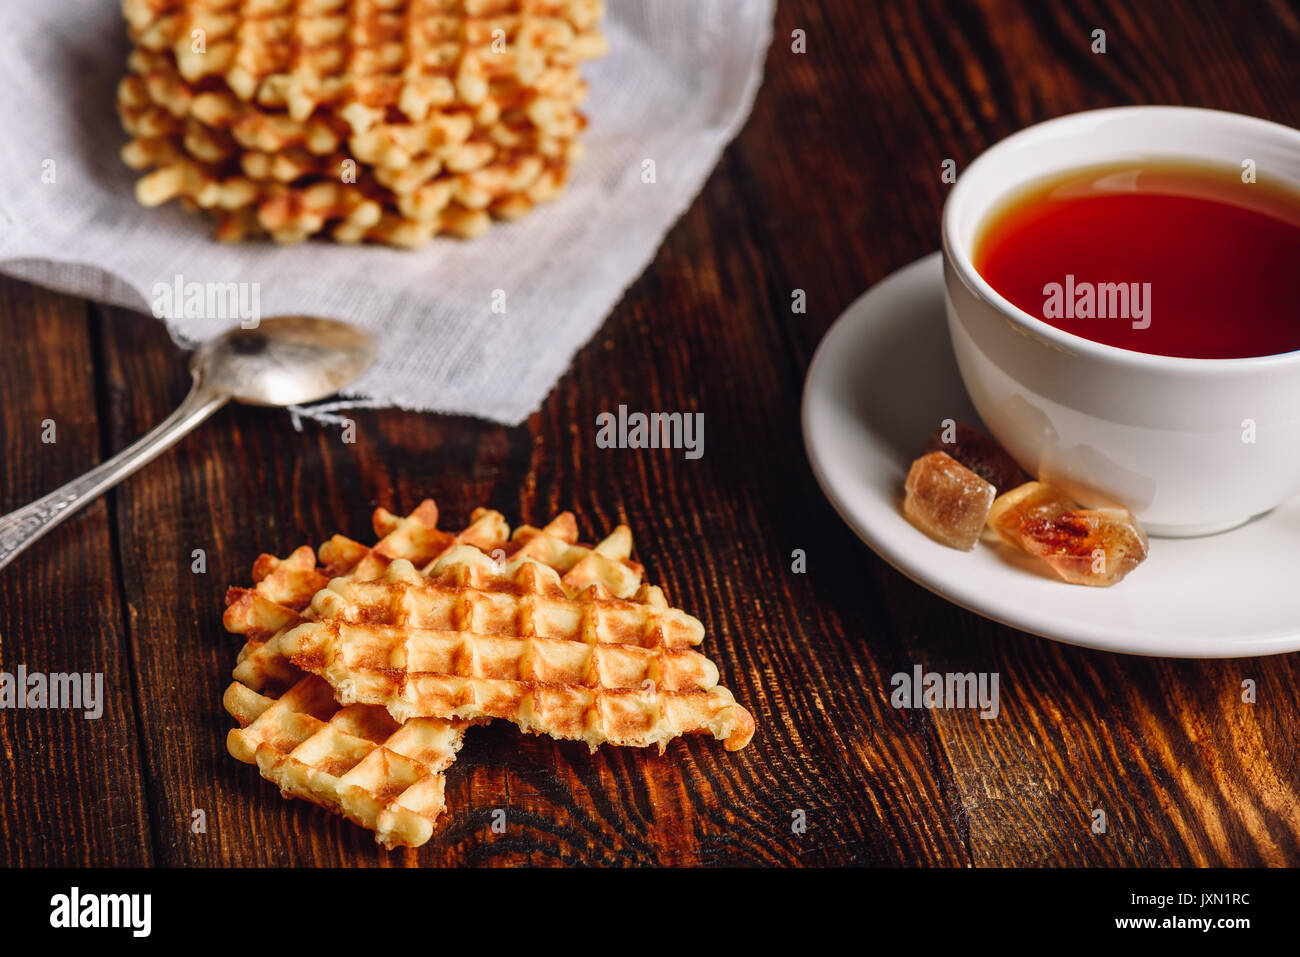 White Cup of Tea with Waffles Stack on Napkin and Pieces of Waffle on Wooden Surface and Spoon. - Stock Image